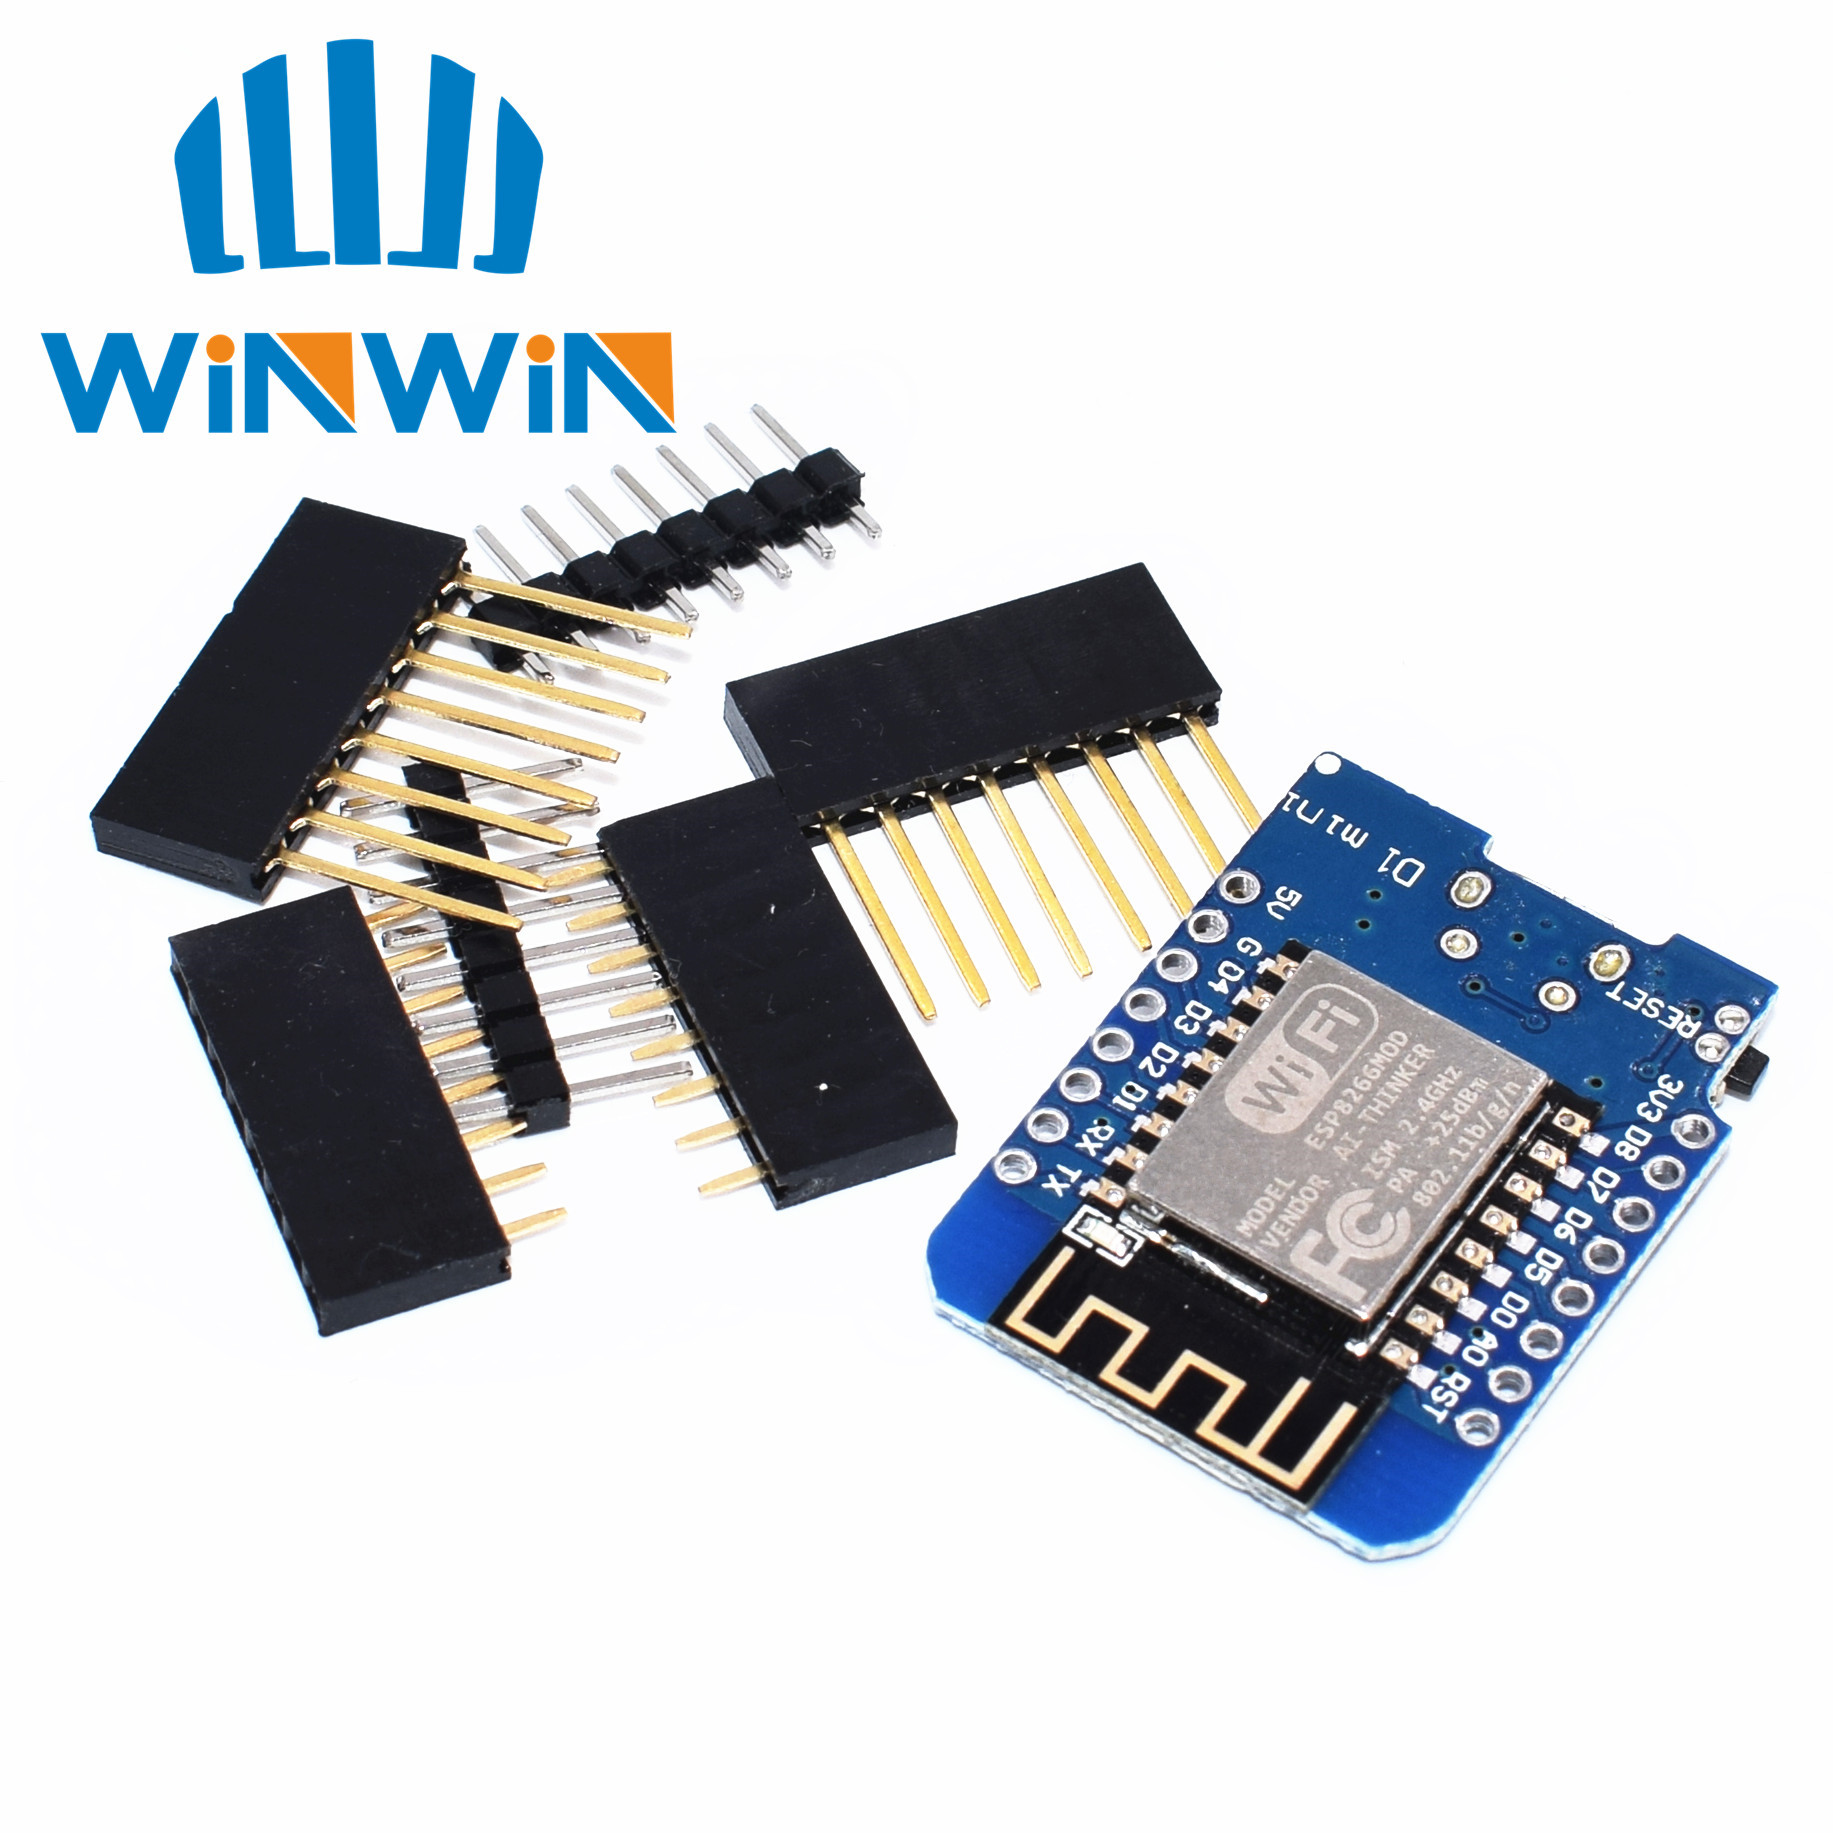 10pcs D1 Mini - Mini NodeMcu 4M Bytes Lua WIFI Internet Of Things Development Board Based ESP8266 WeMos